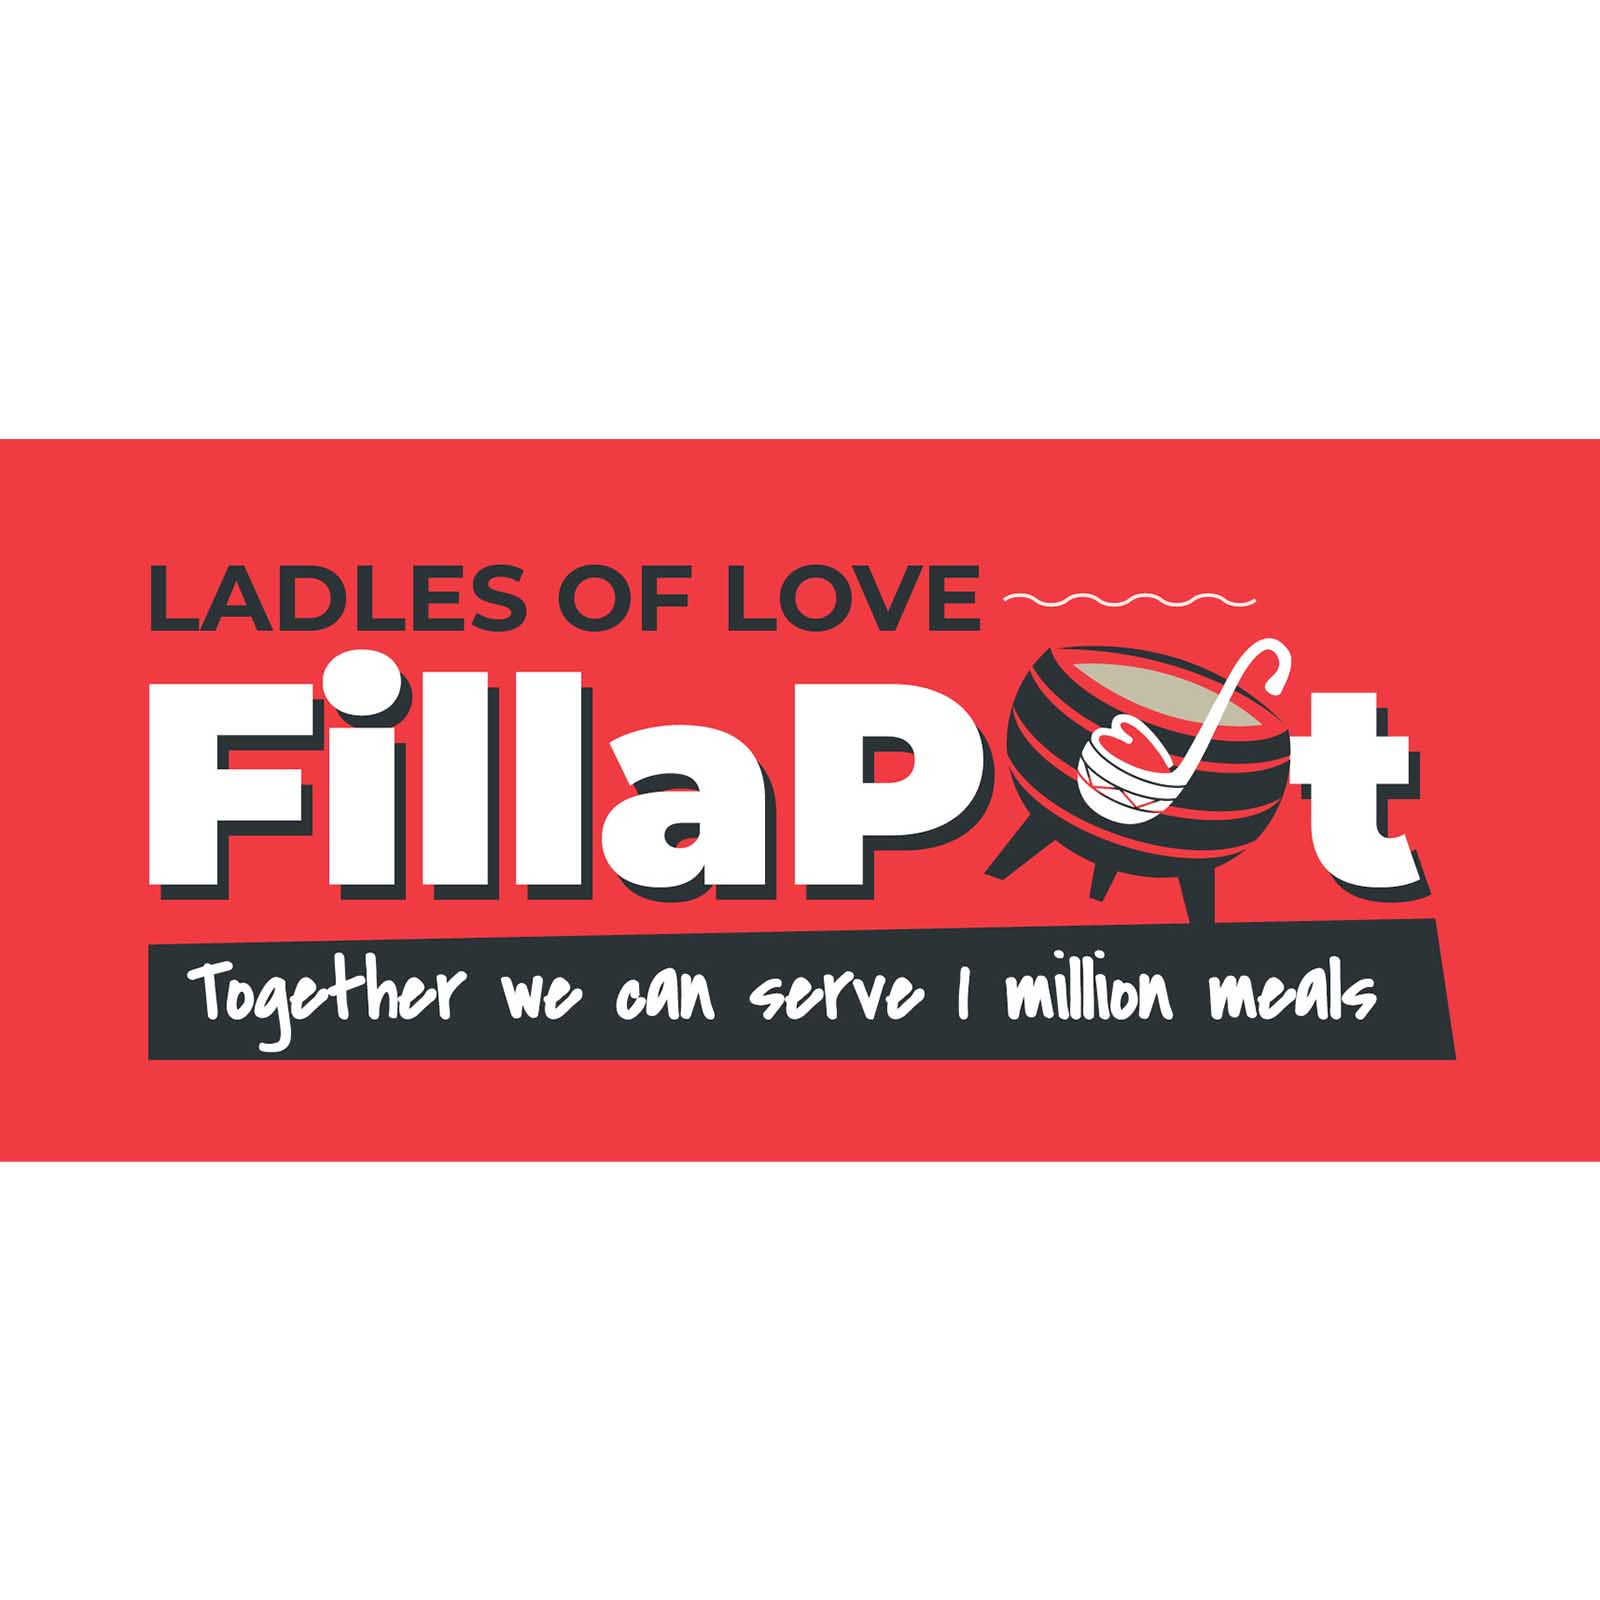 a red logo with a traditional south african potjie iron pot with the ladles of love heart ladle for our charity campaign ideas called fiil a pot